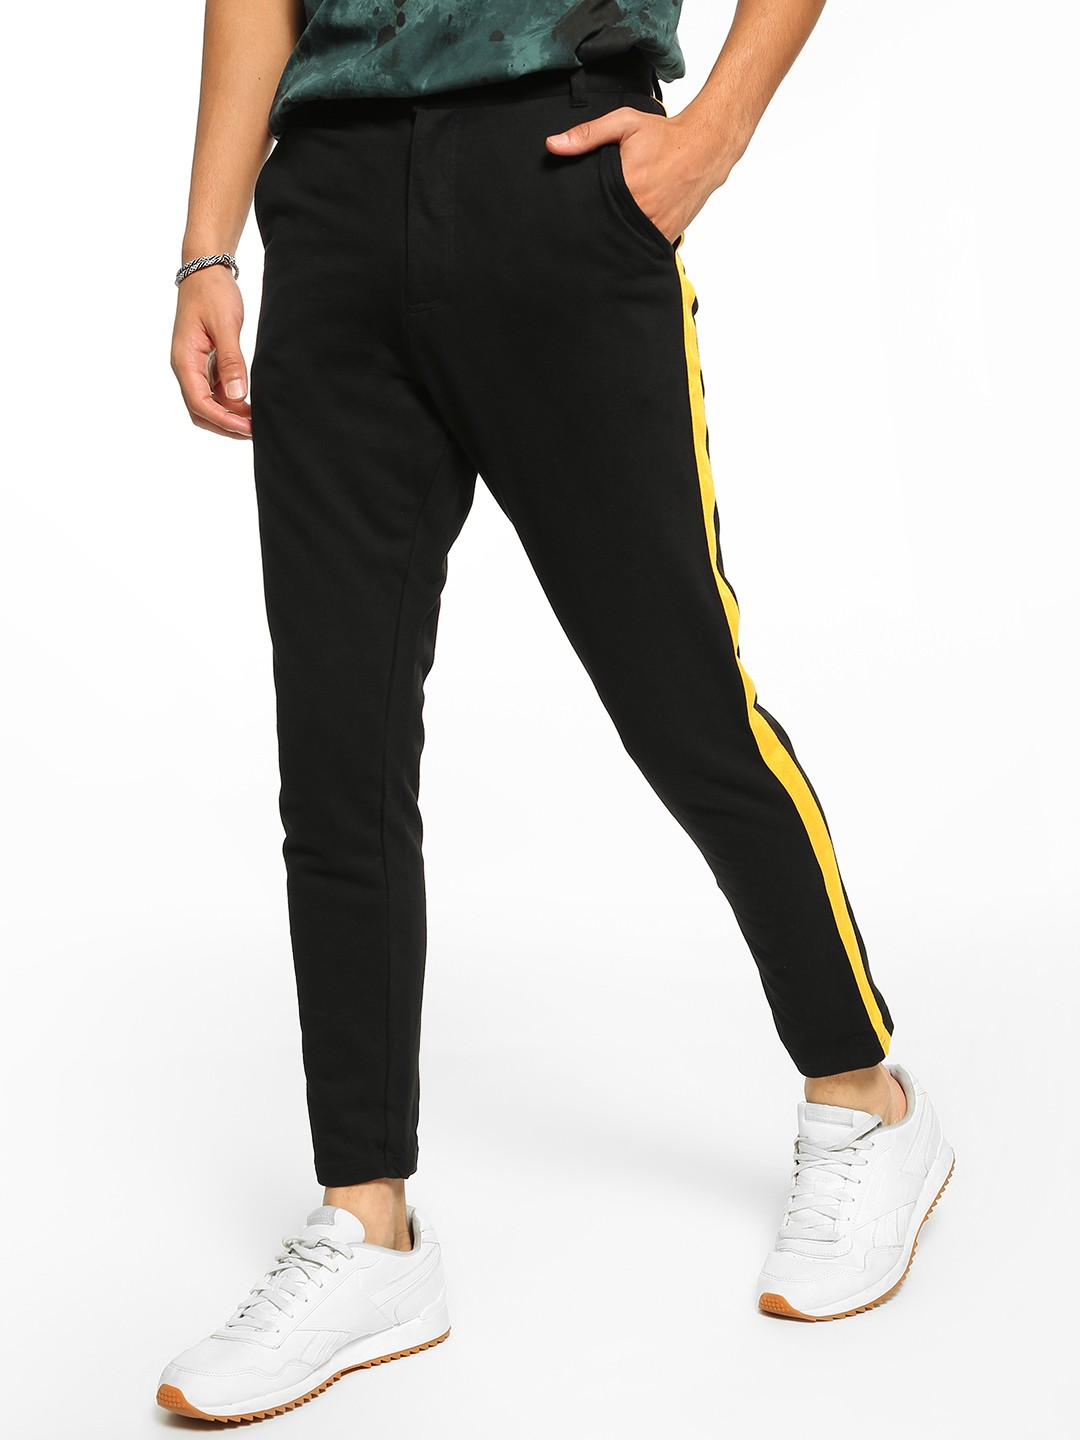 Garcon Black Knitted Side Tape Trousers 1